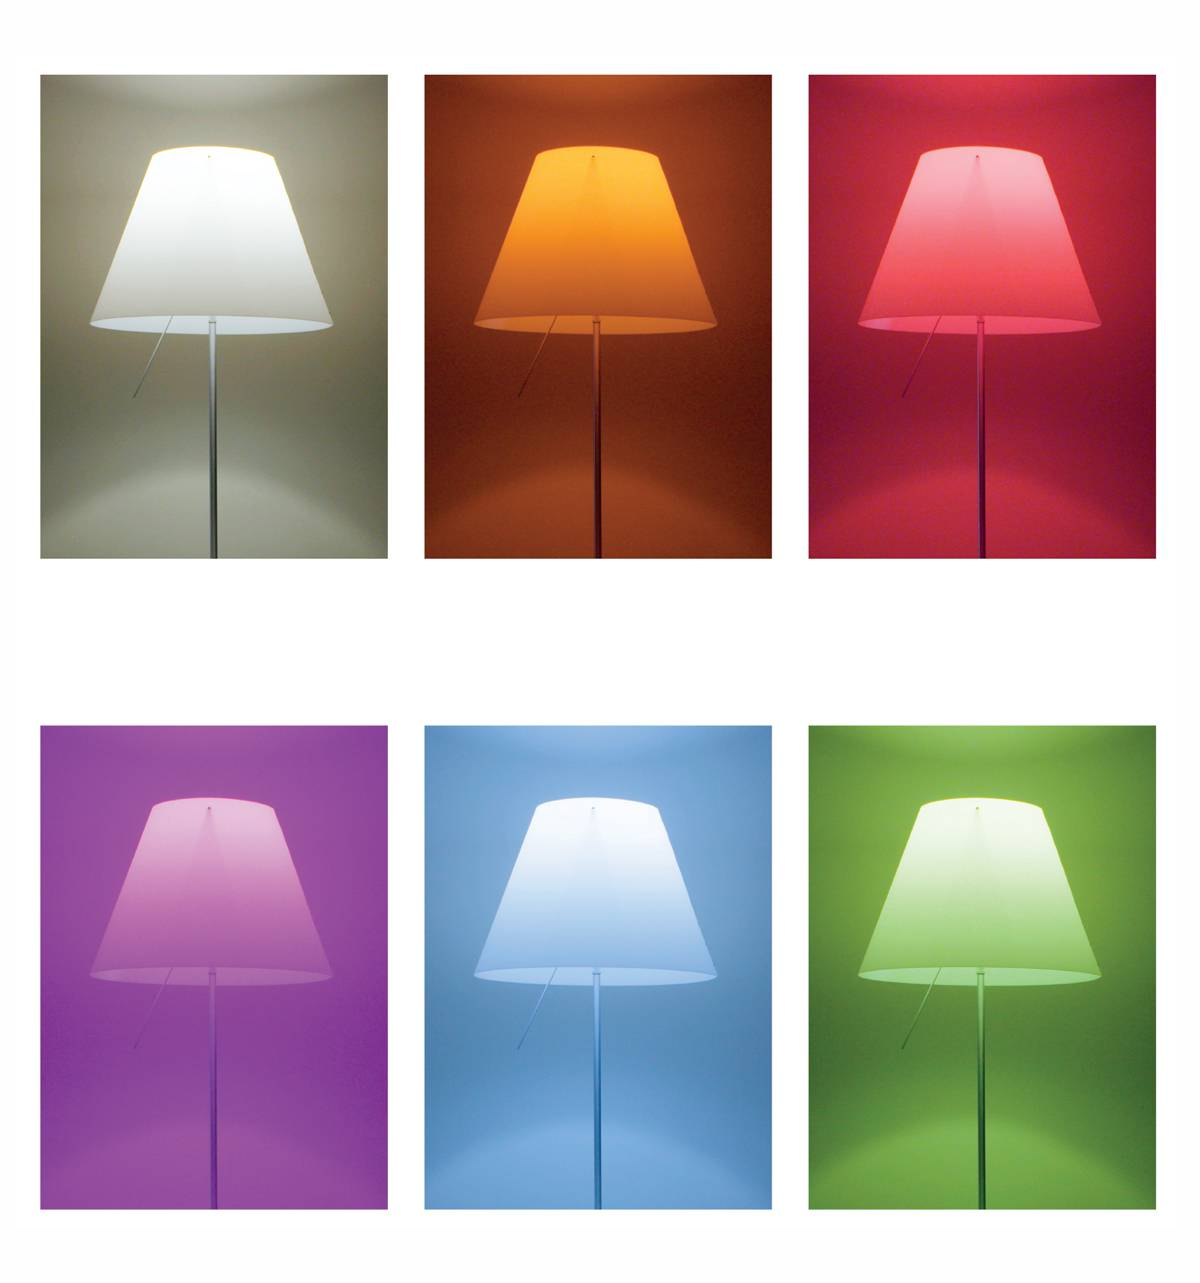 1 Costanza table lamp friends of hue Luceplan